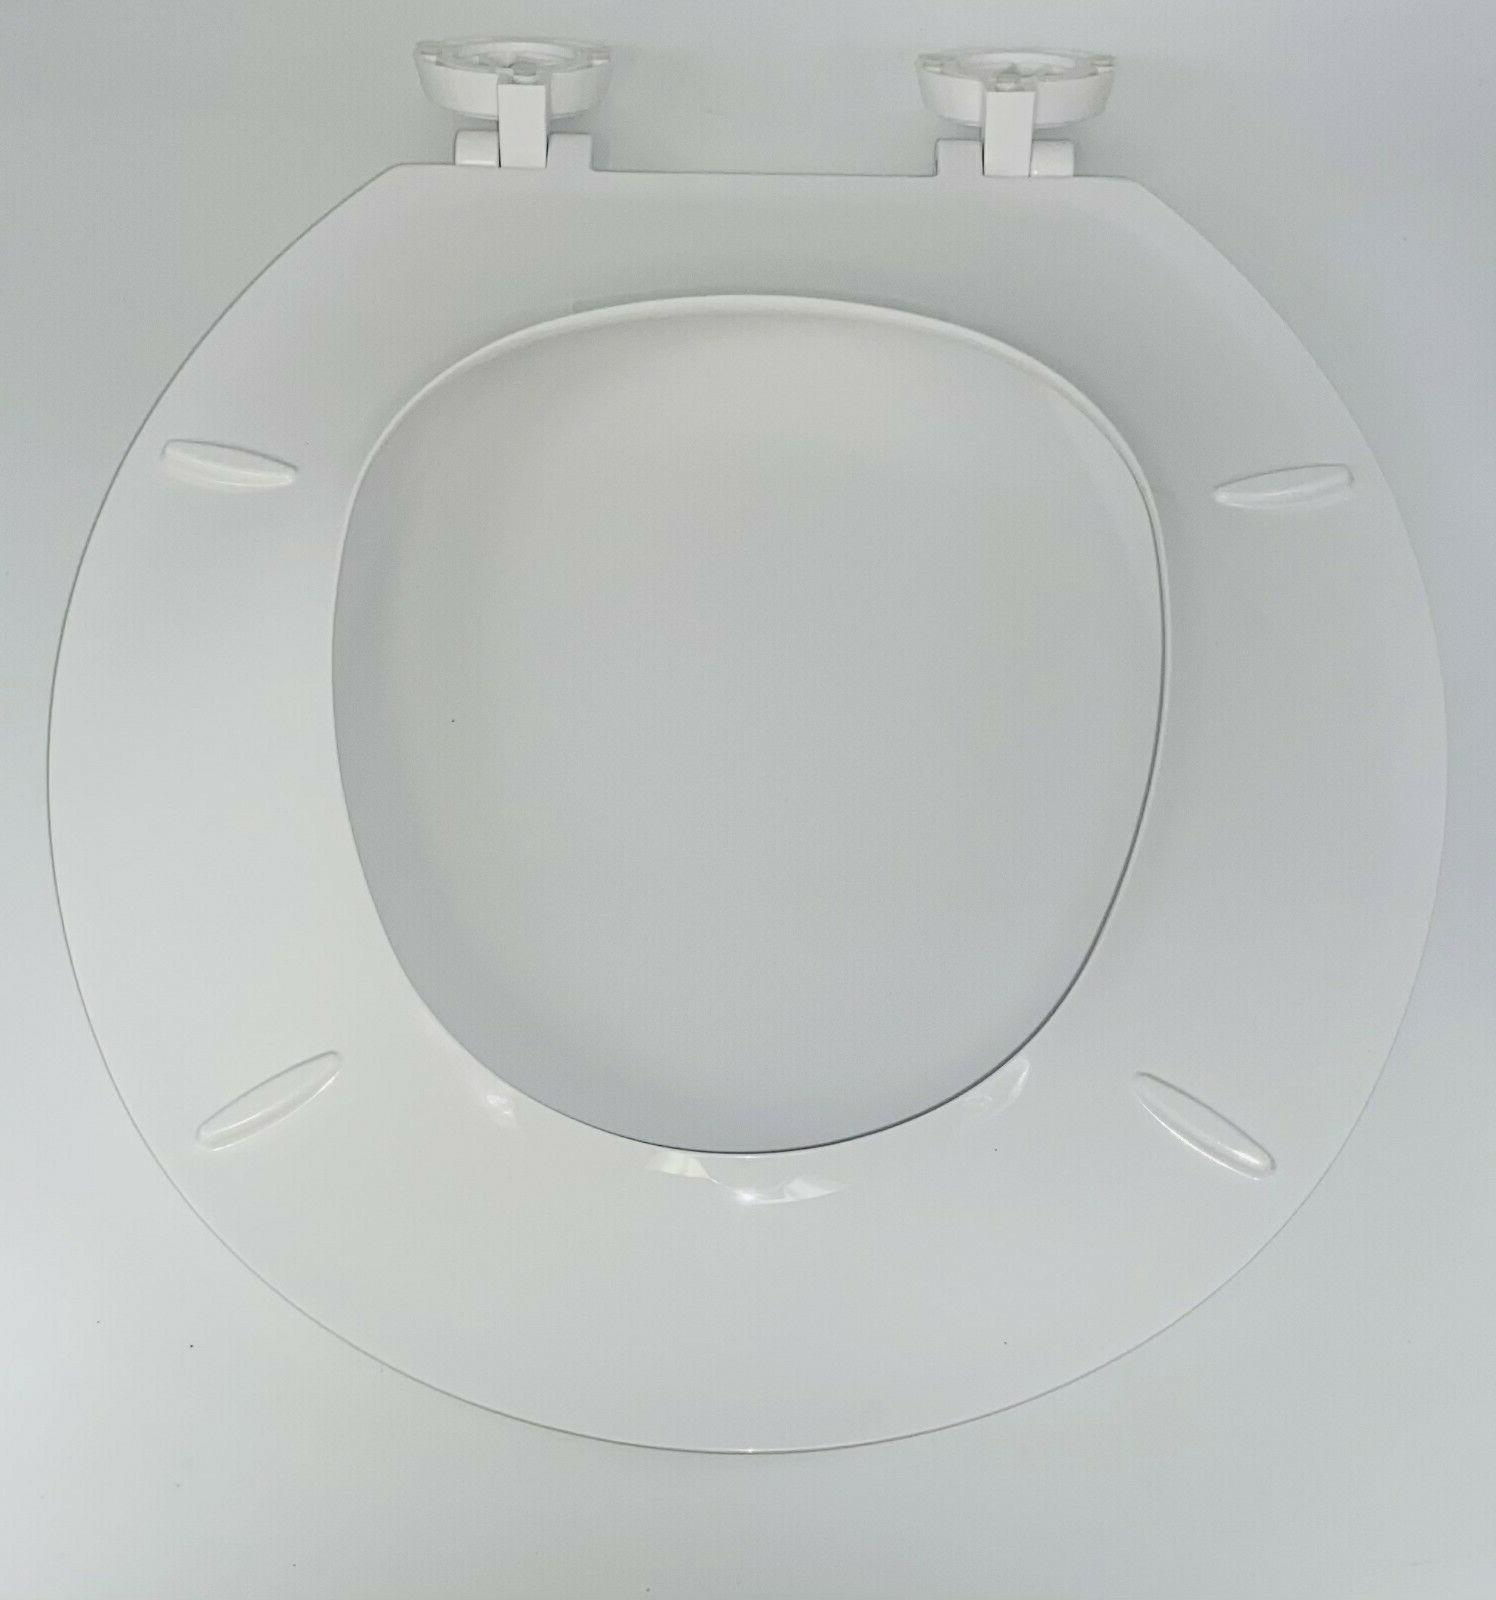 Heavy Duty Toilet Replacement Cover With Lid, Round White